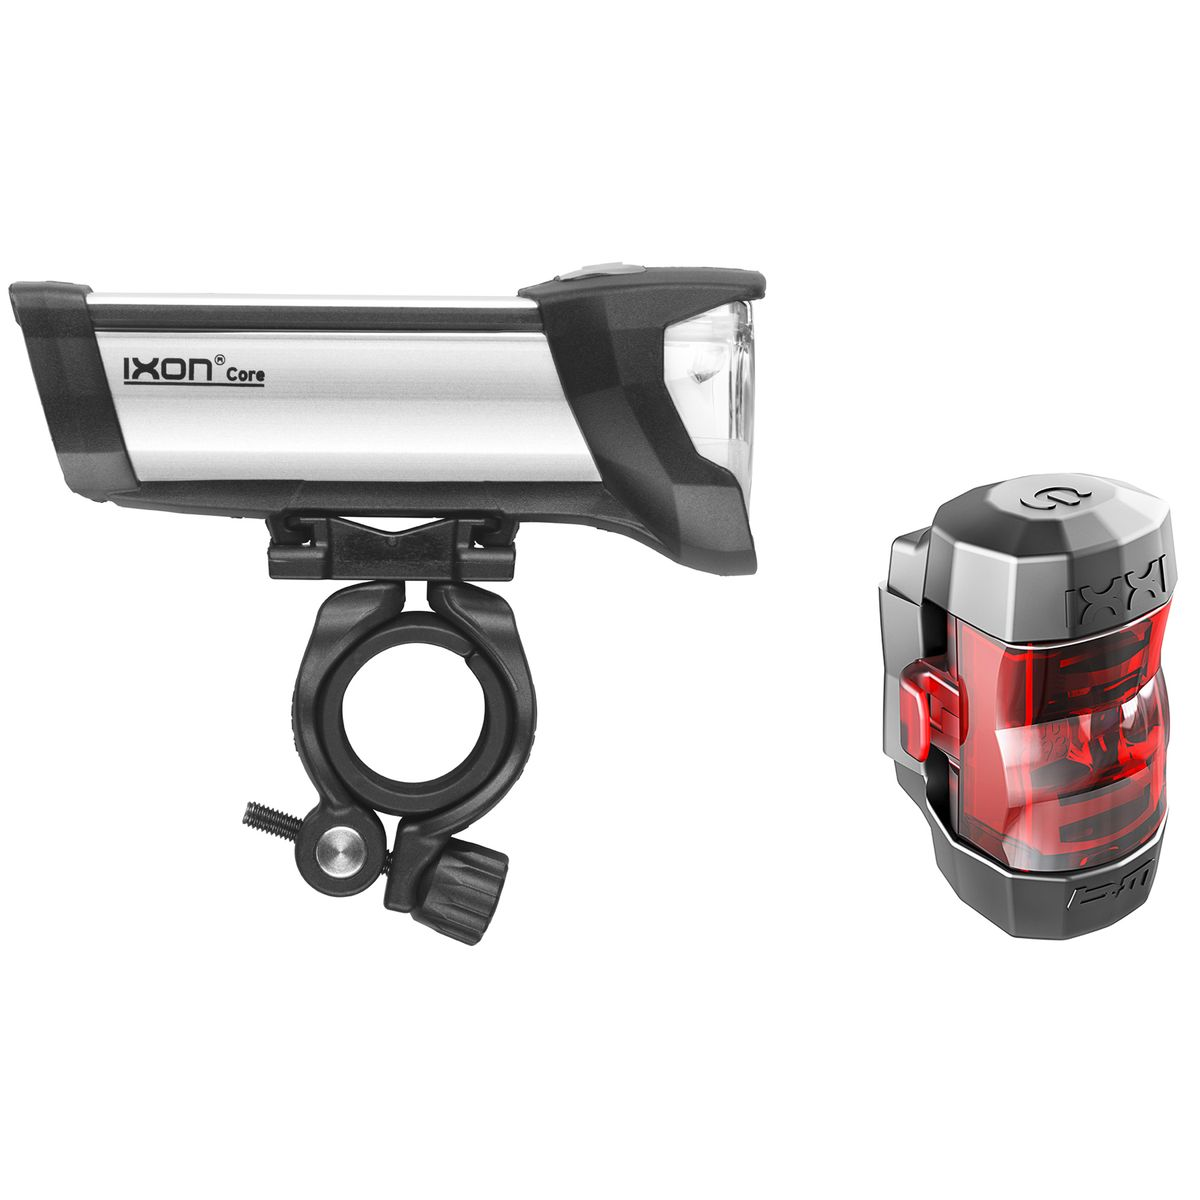 Ixon Core front light and IXXI diode rear light set